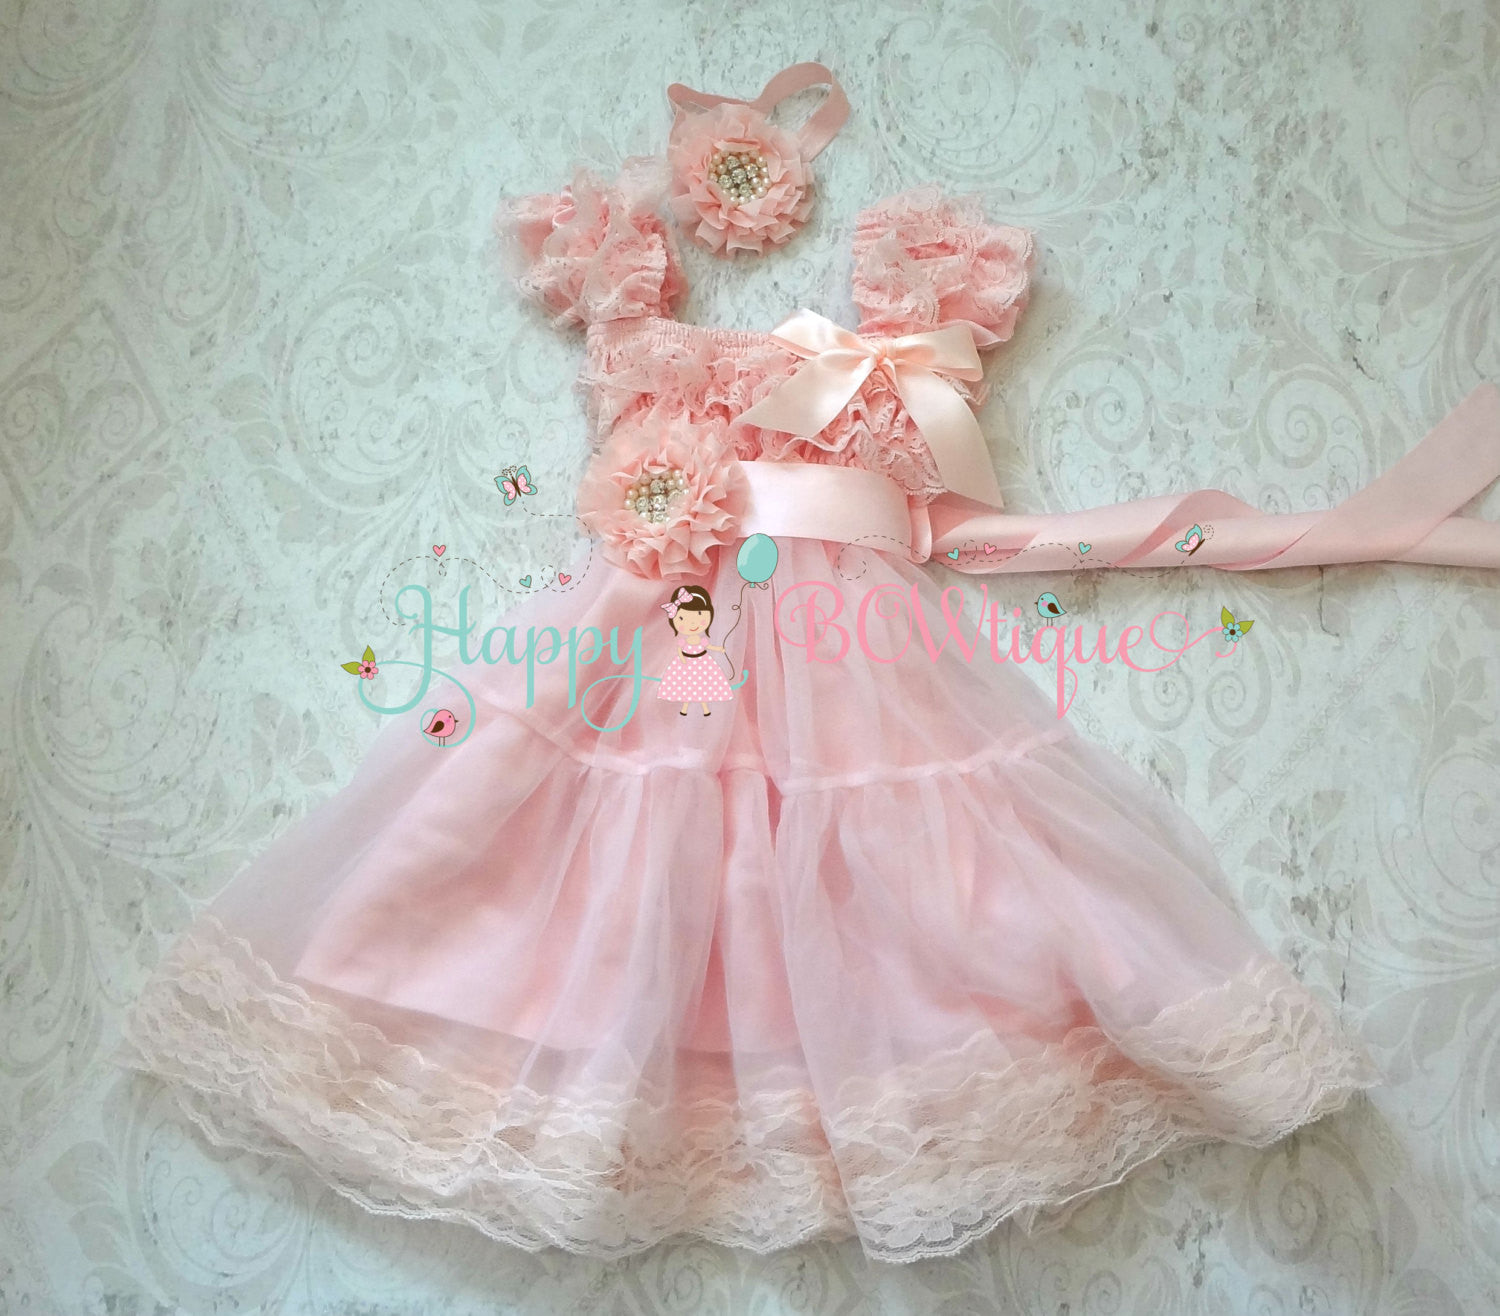 Baby Girls' dress/ Girl's Ivory Pink Chiffon Lace Dress set - Happy BOWtique - children's clothing, Baby Girl clothing